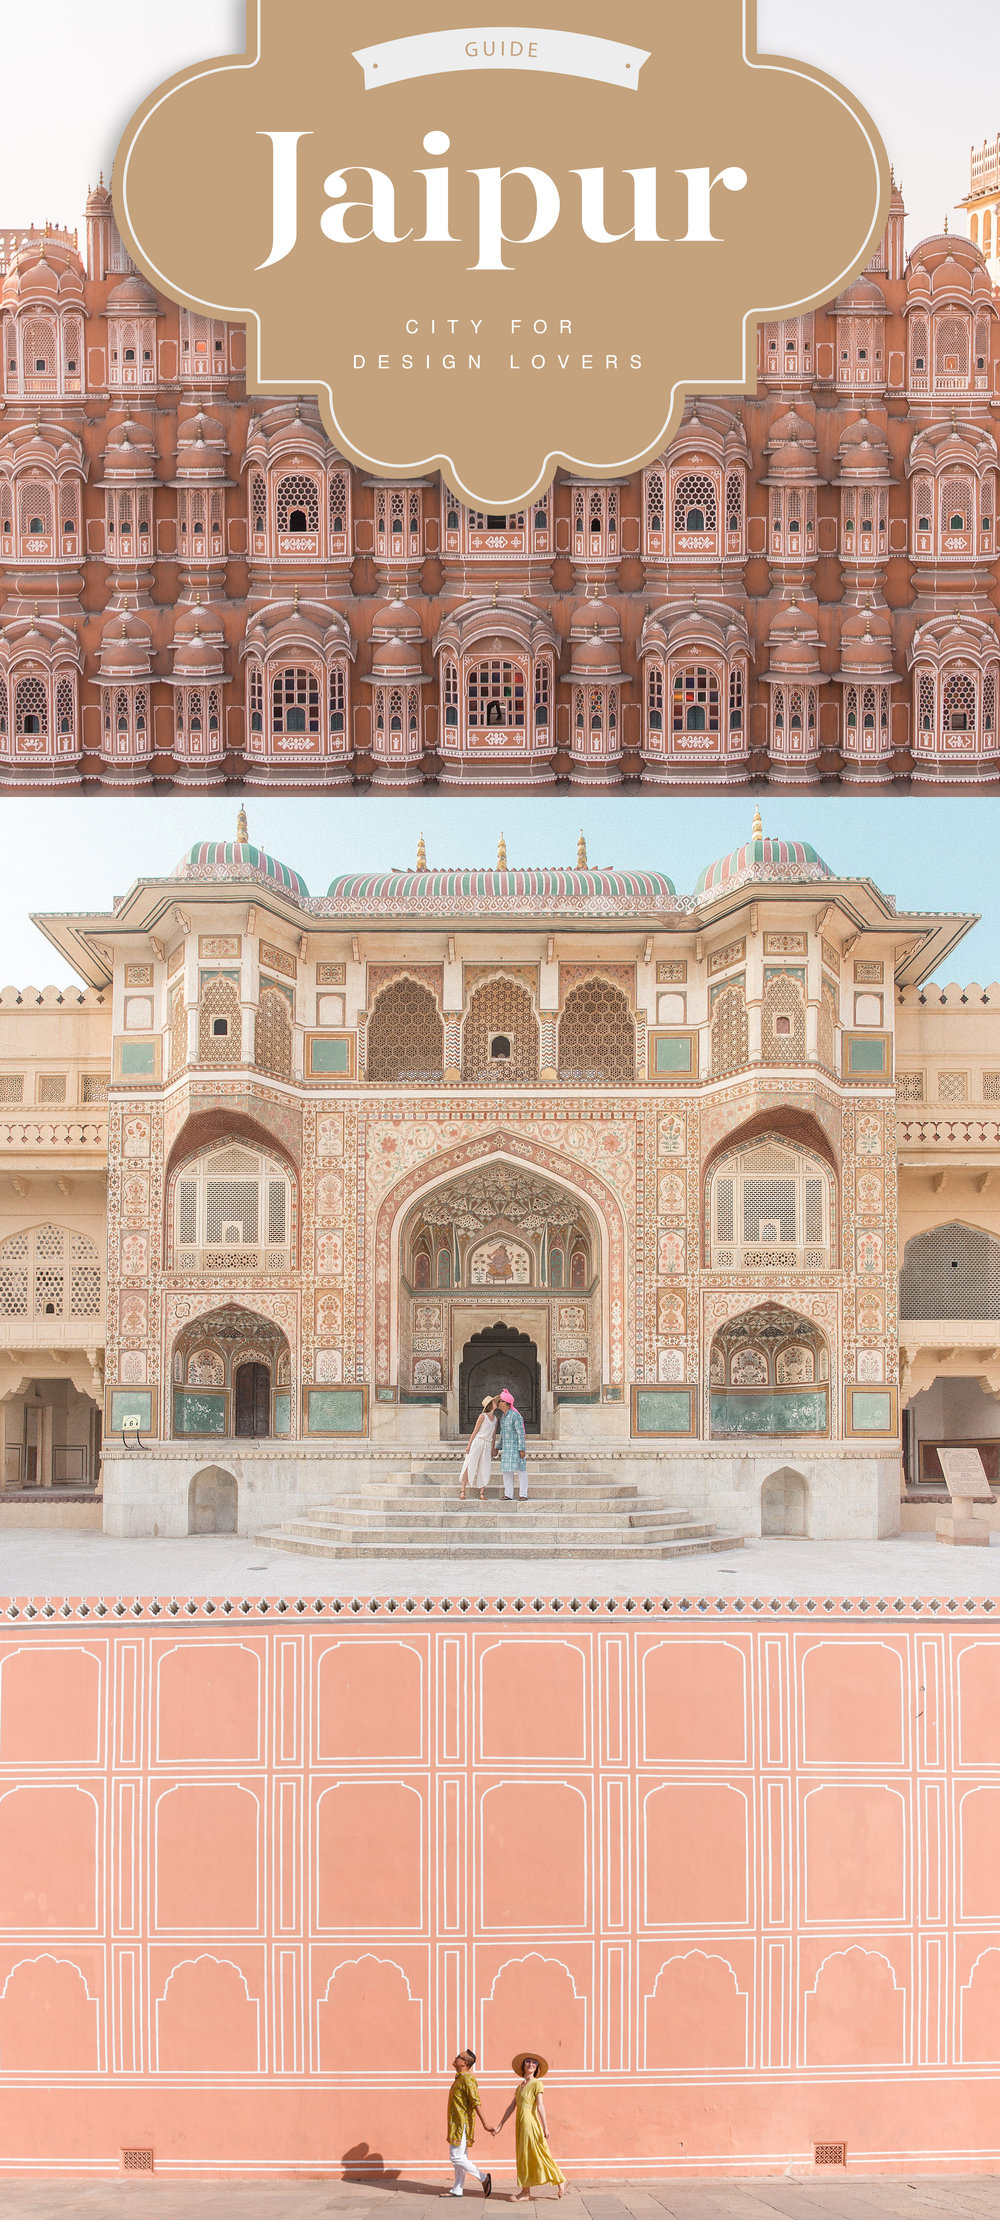 Jaipur-City-Guide.jpg